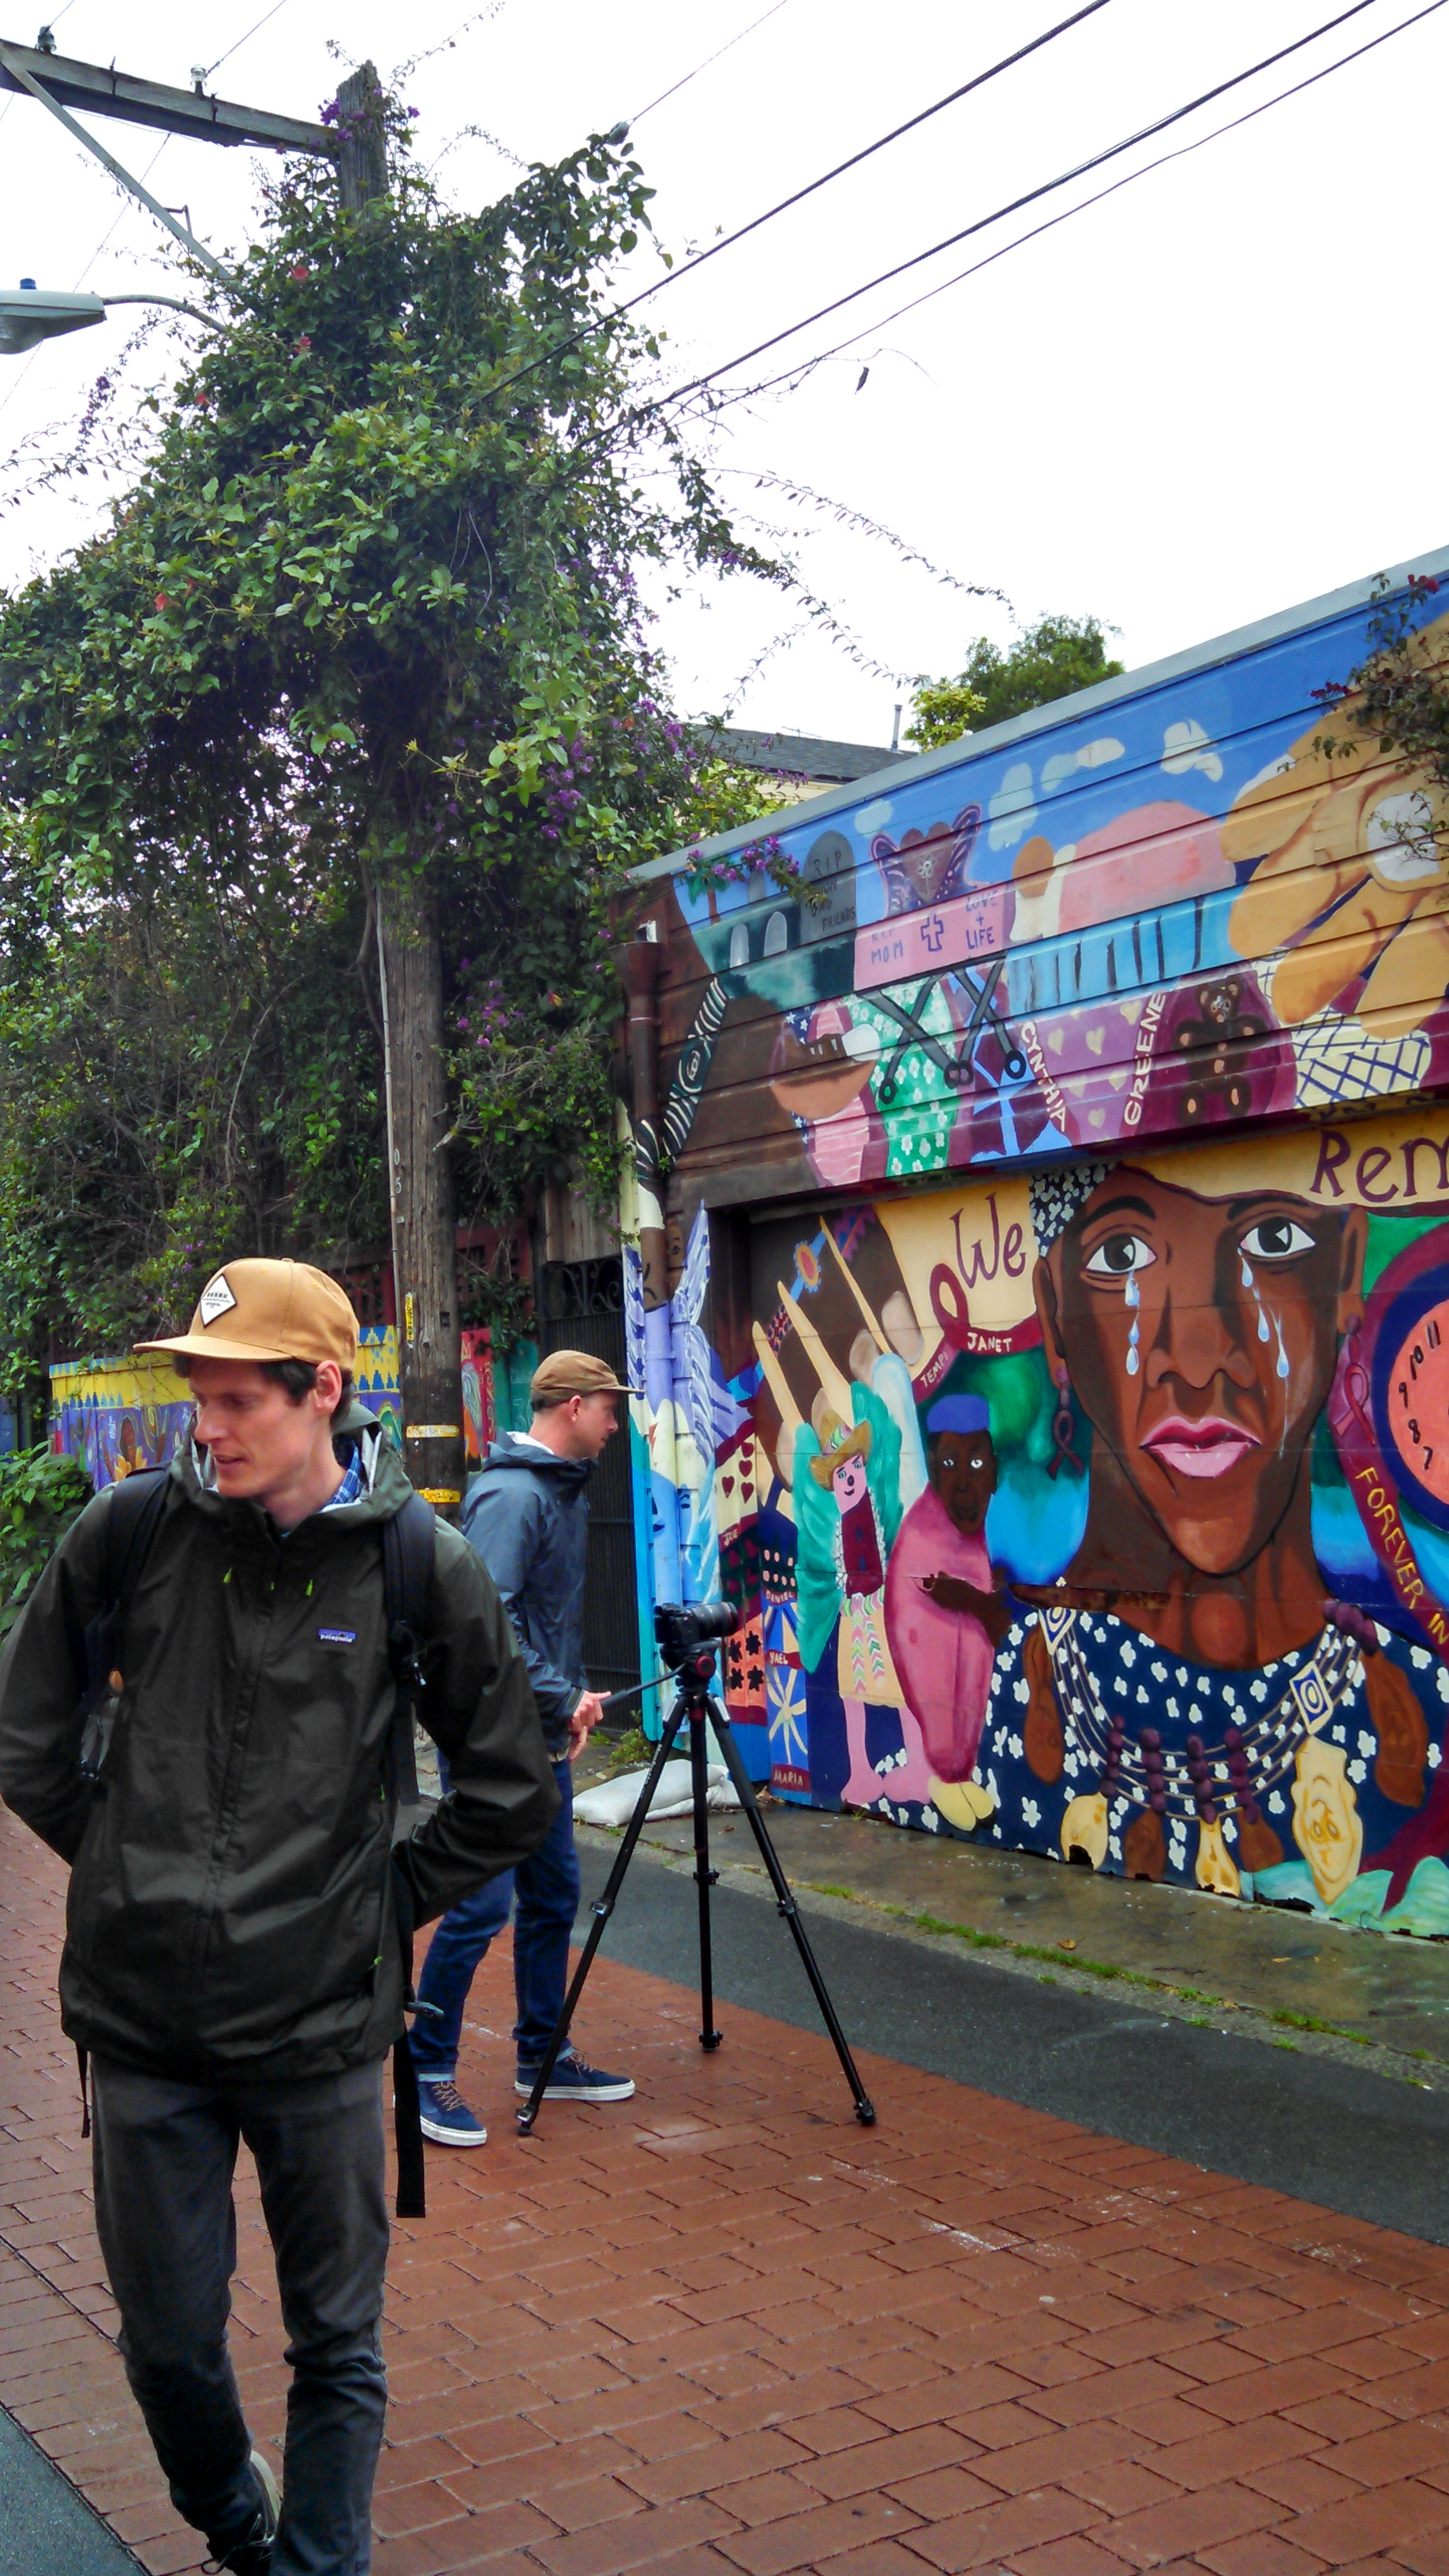 Plus M Productions filming in Legal Services For Children's mural in Balmy Alley.